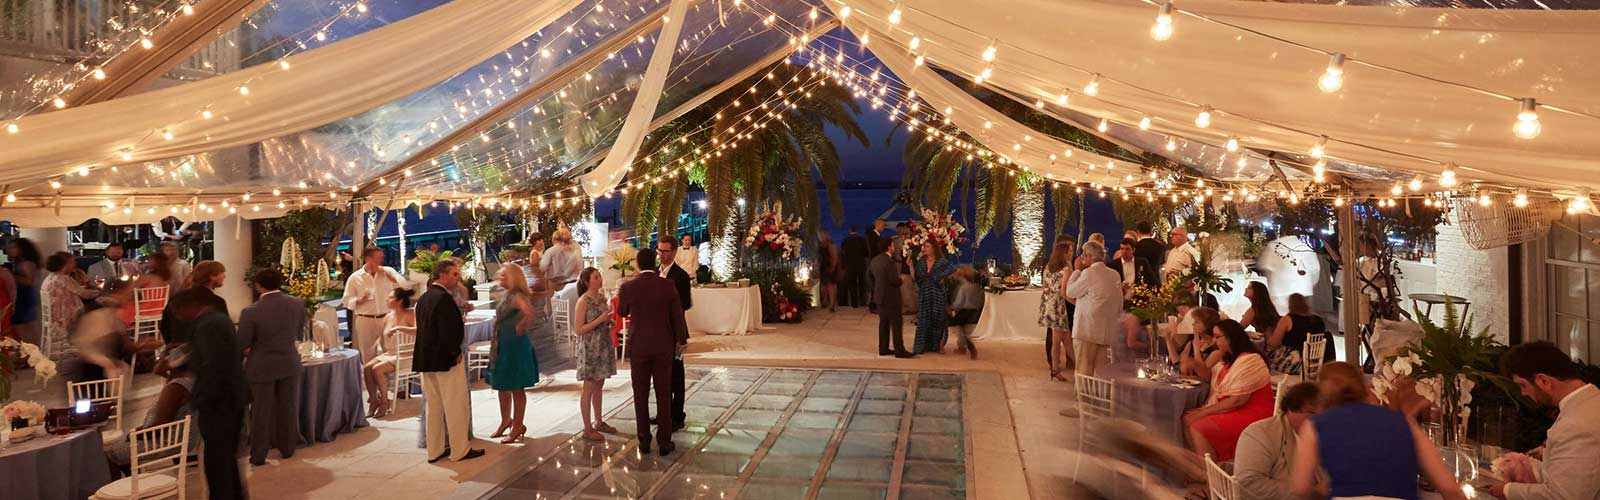 Wedding rentals in Mobile AL and the Greater Gulf Coast